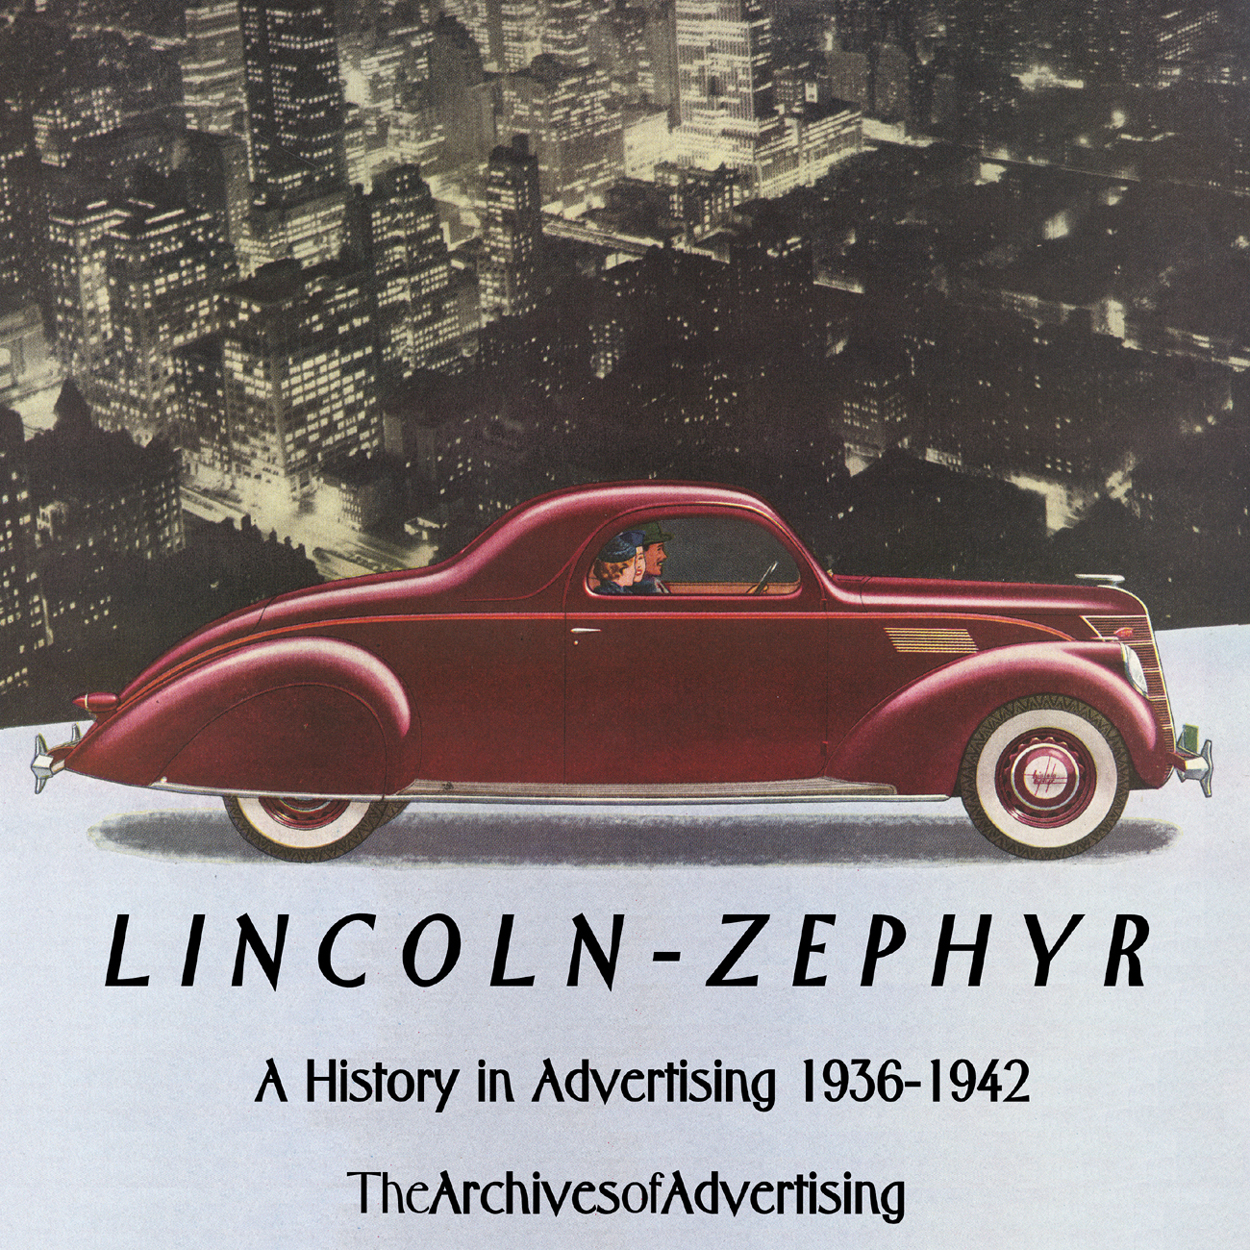 1936 1937 1938 1939 1940 1941 1942 Lincoln Zephyr ad CD 80+ ads!